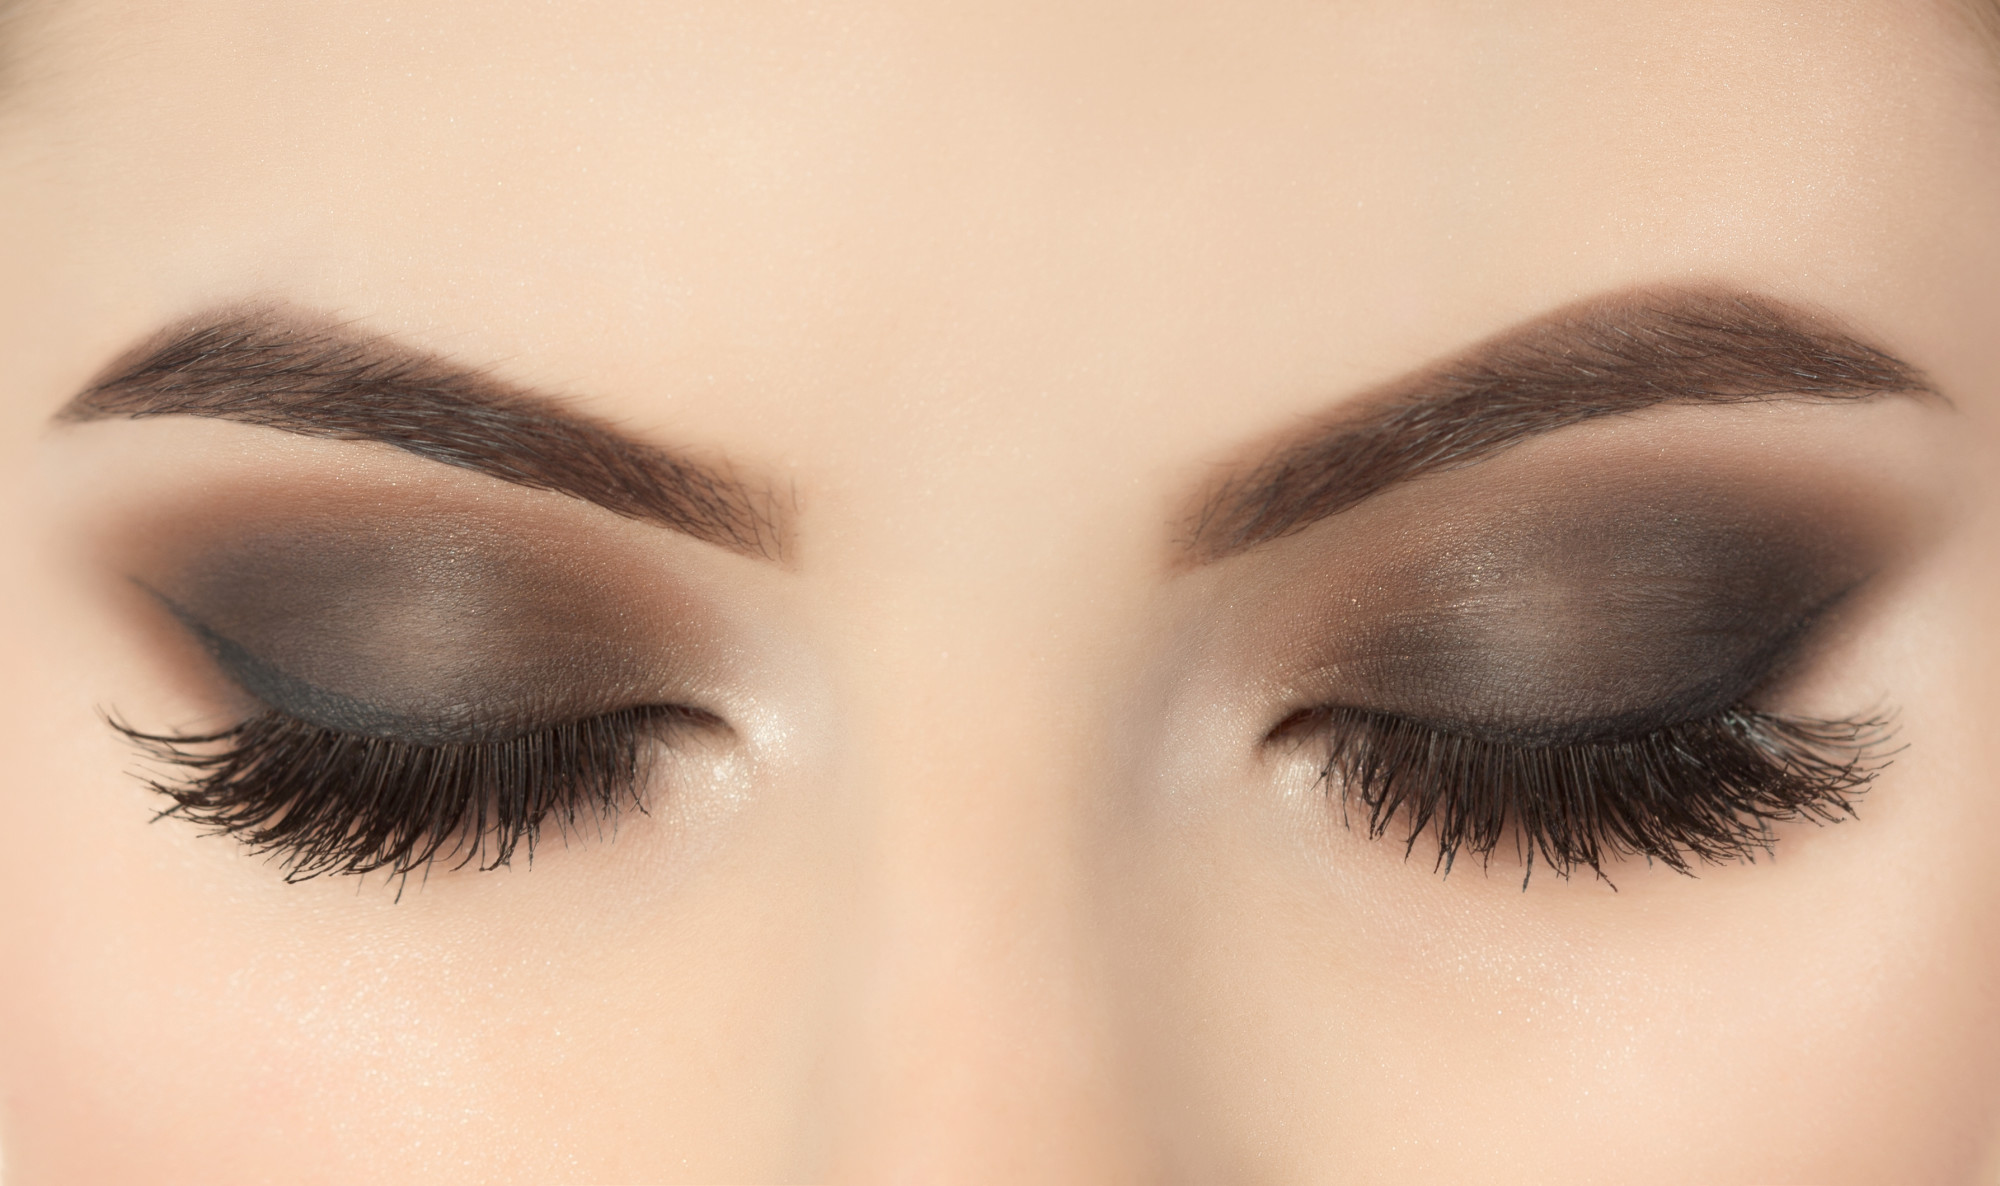 The Complete Guide to Getting Beautiful Eyelashes